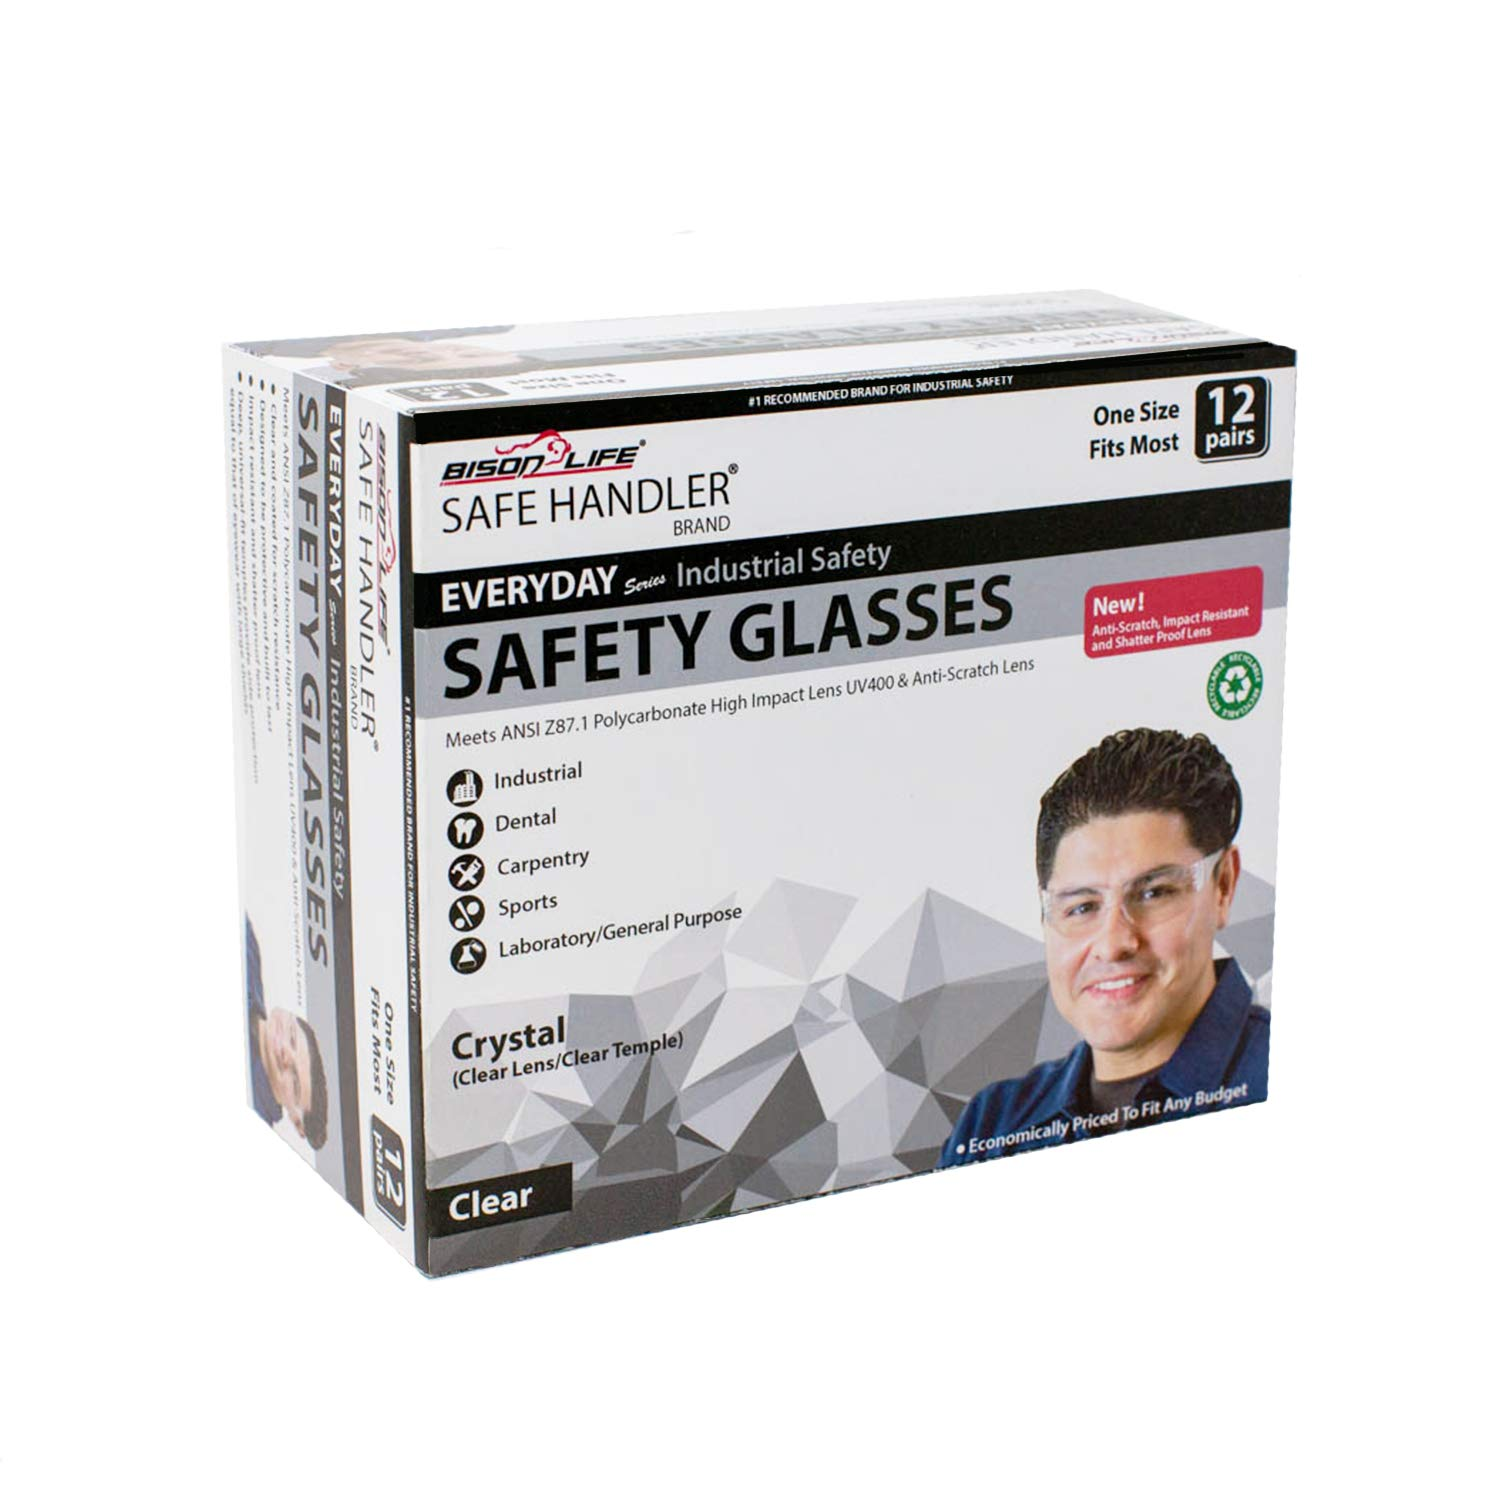 BISON LIFE Safety Glasses | One Size, Clear Protective Polycarbonate Lens, Clear Temple, 12 per Box (Case of 12 boxes, 144 pairs total) by BISON LIFE (Image #10)